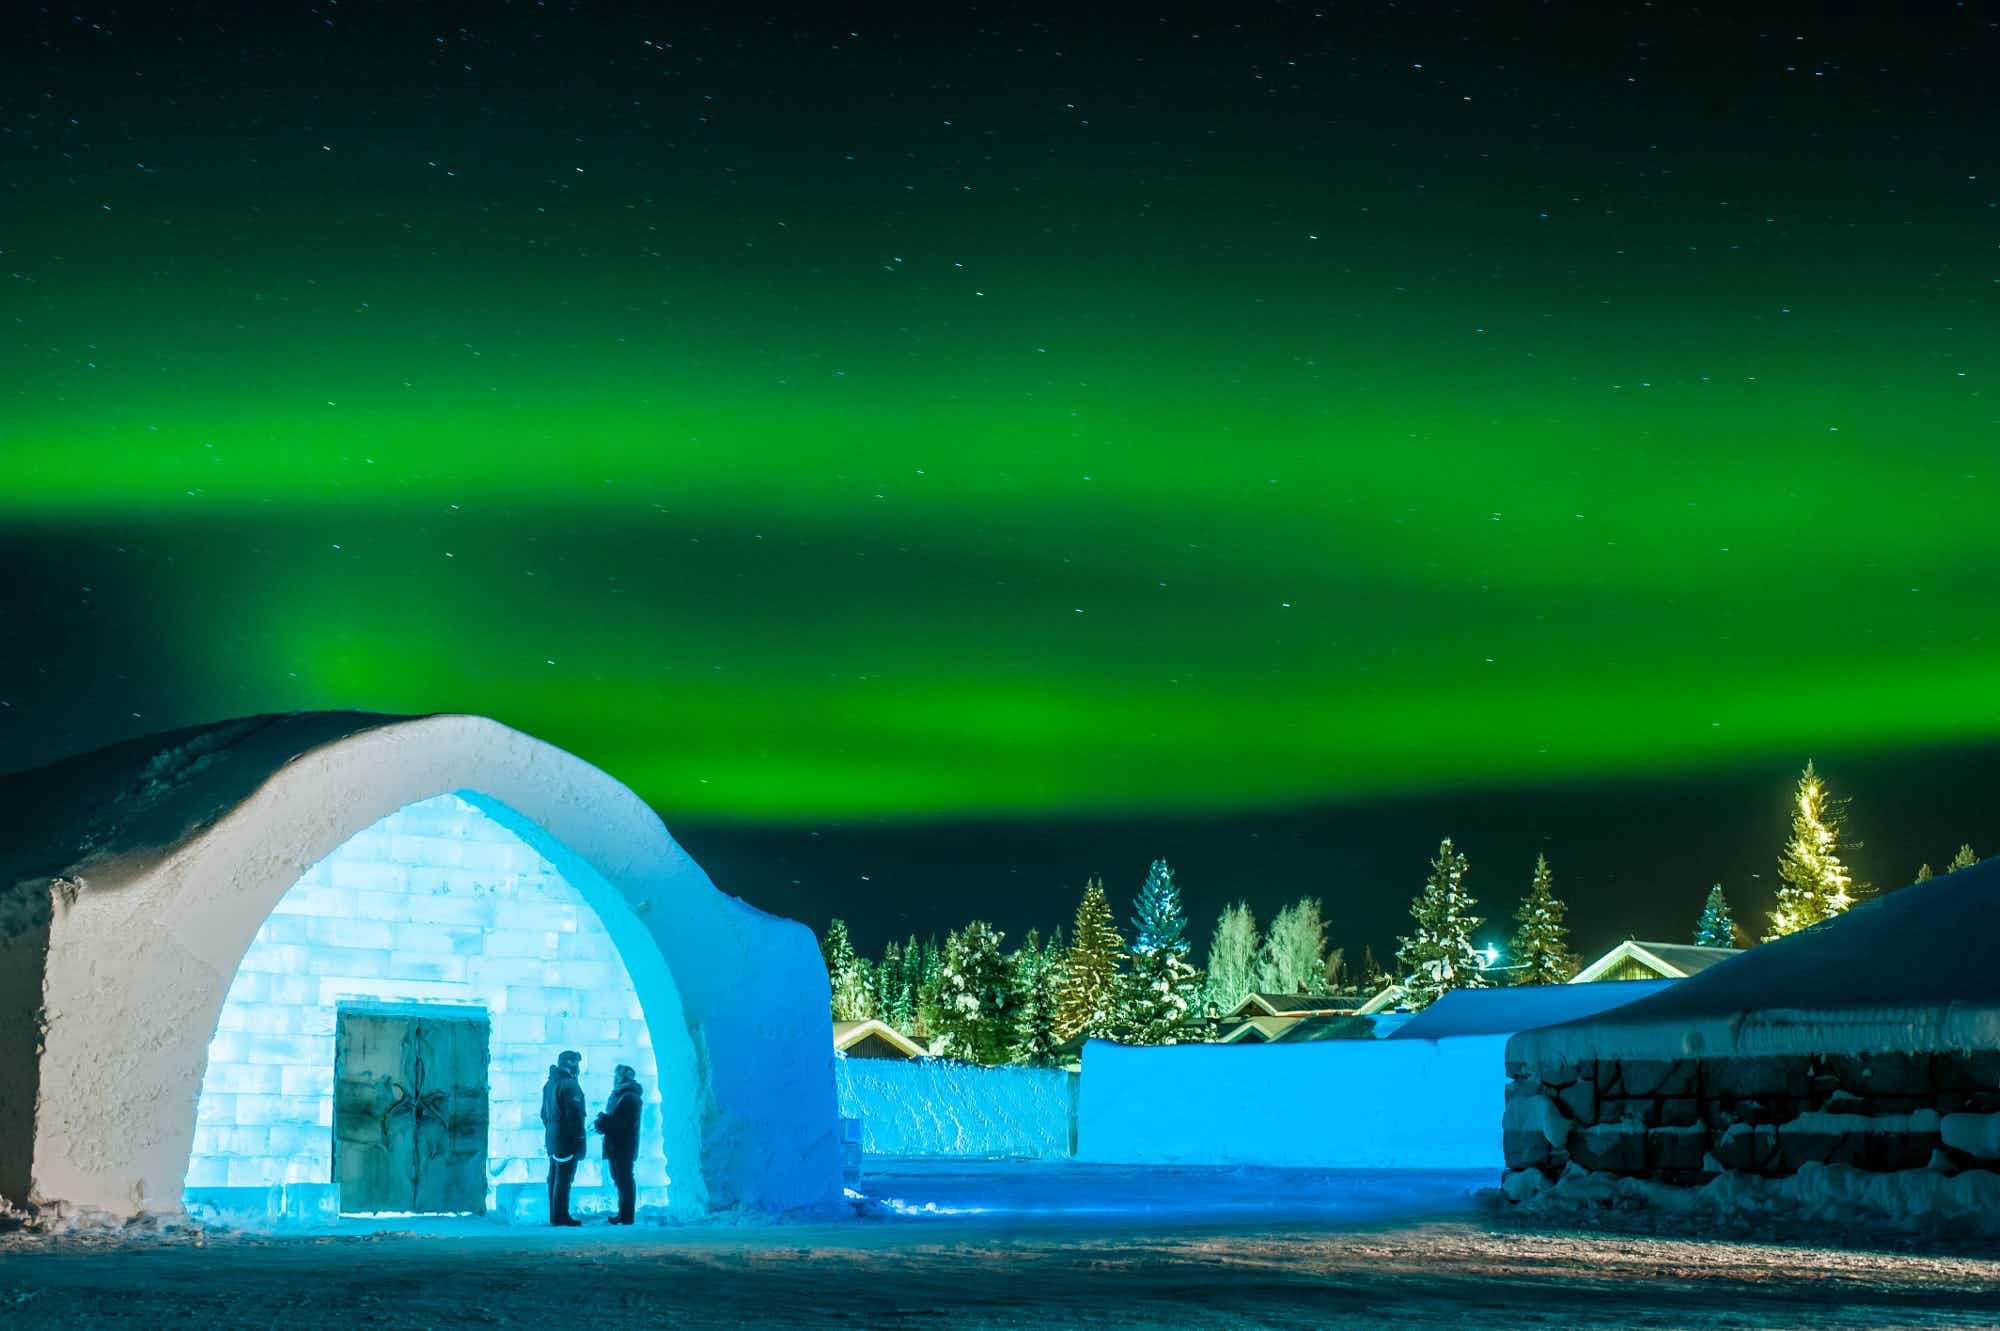 Sweden is getting its 28th Ice Hotel this winter, and here's a glimpse of what it will look like